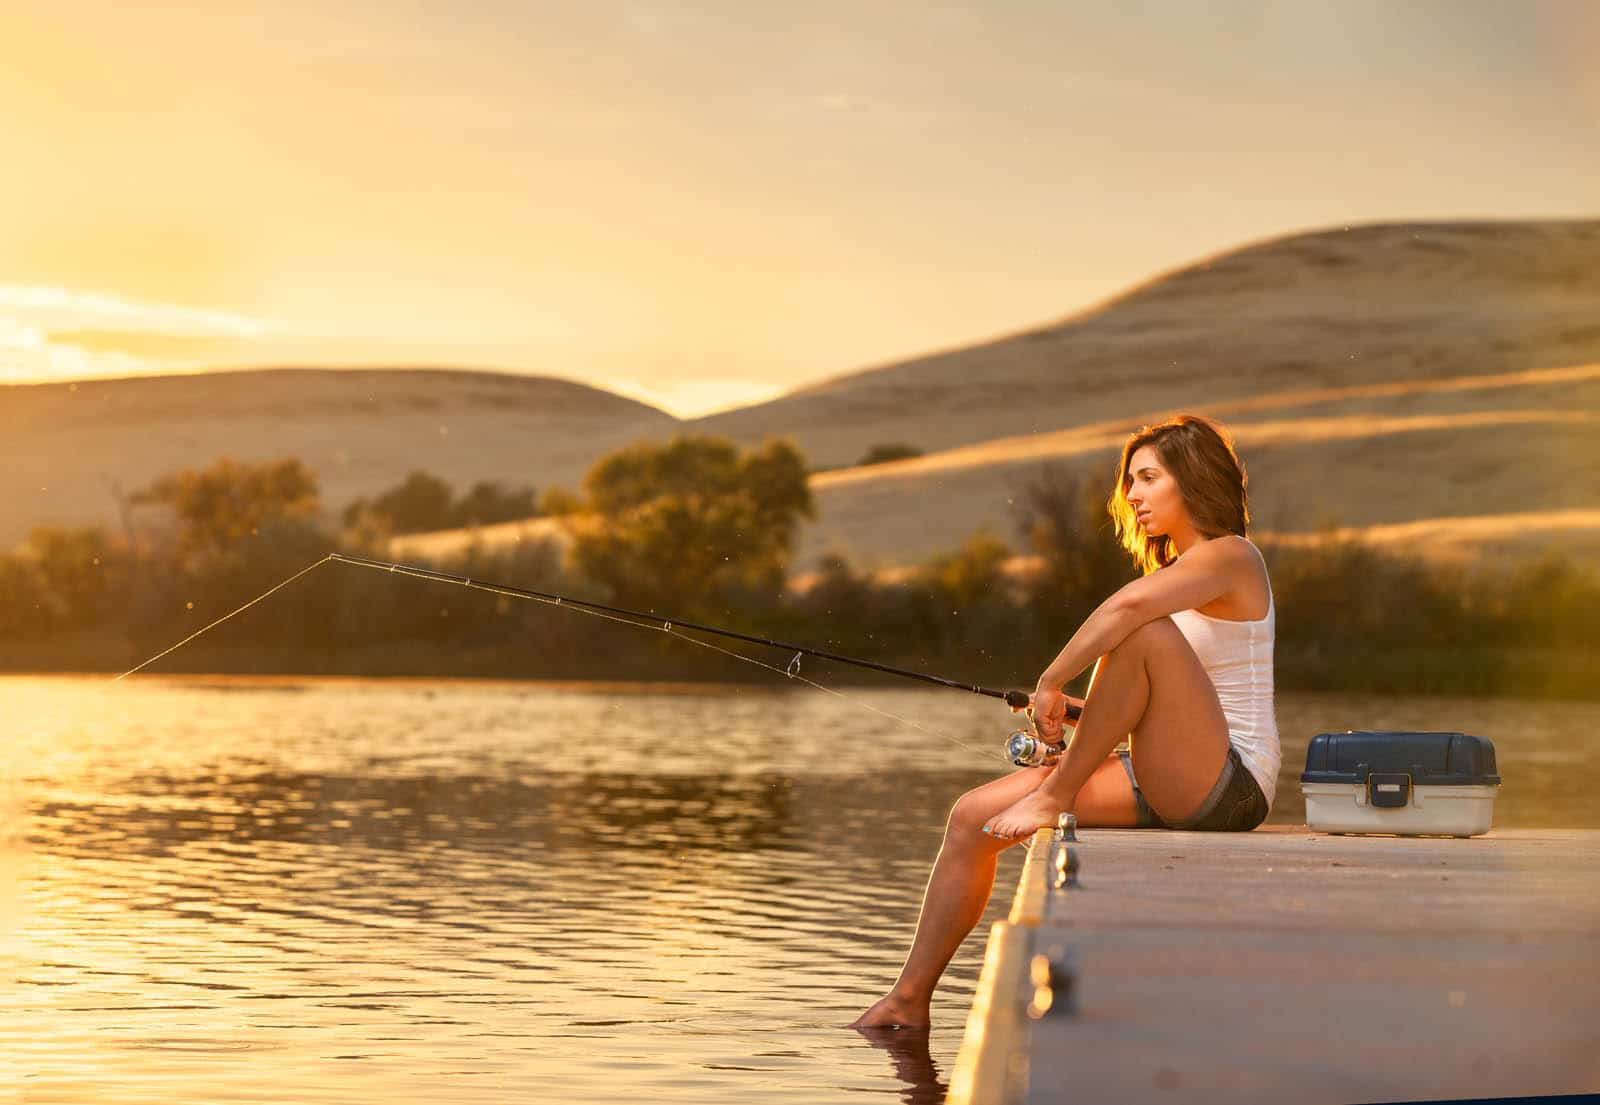 Young woman fishing from a dock on a small lake at sunset.